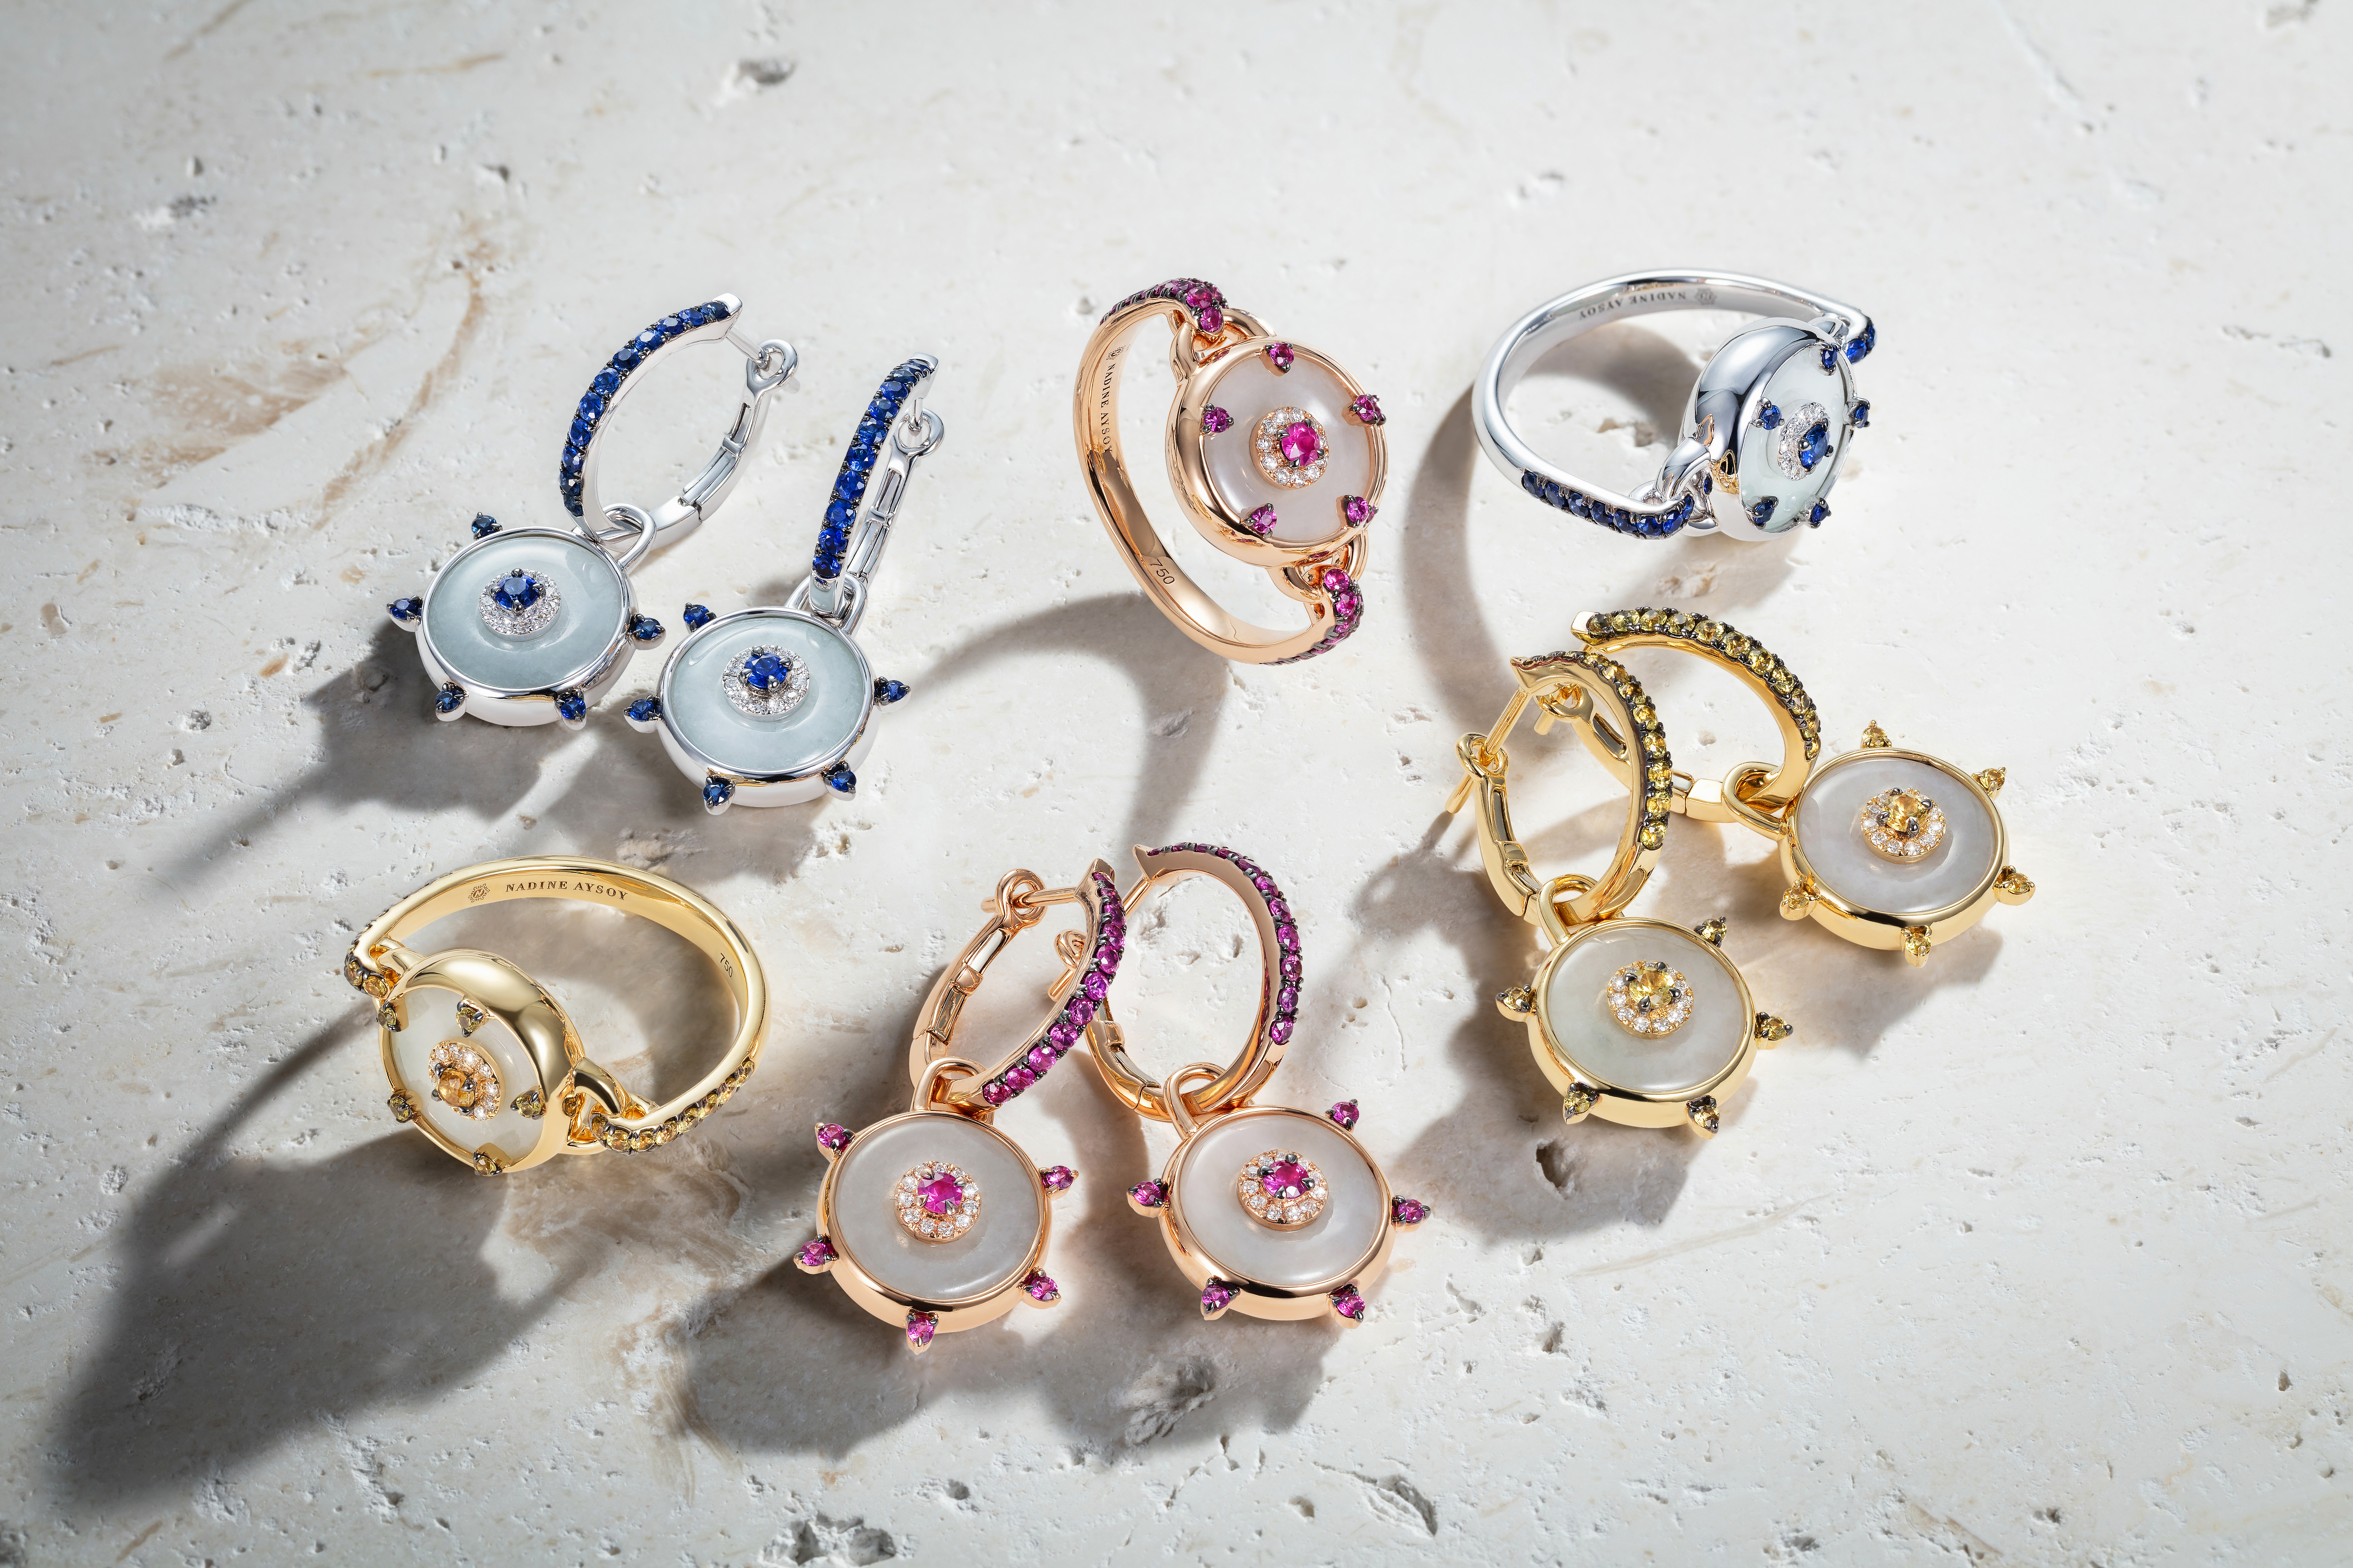 Celeste Blue Sapphire and Jade Huggie Earrings by Nadine Aysoy on curated-crowd.com